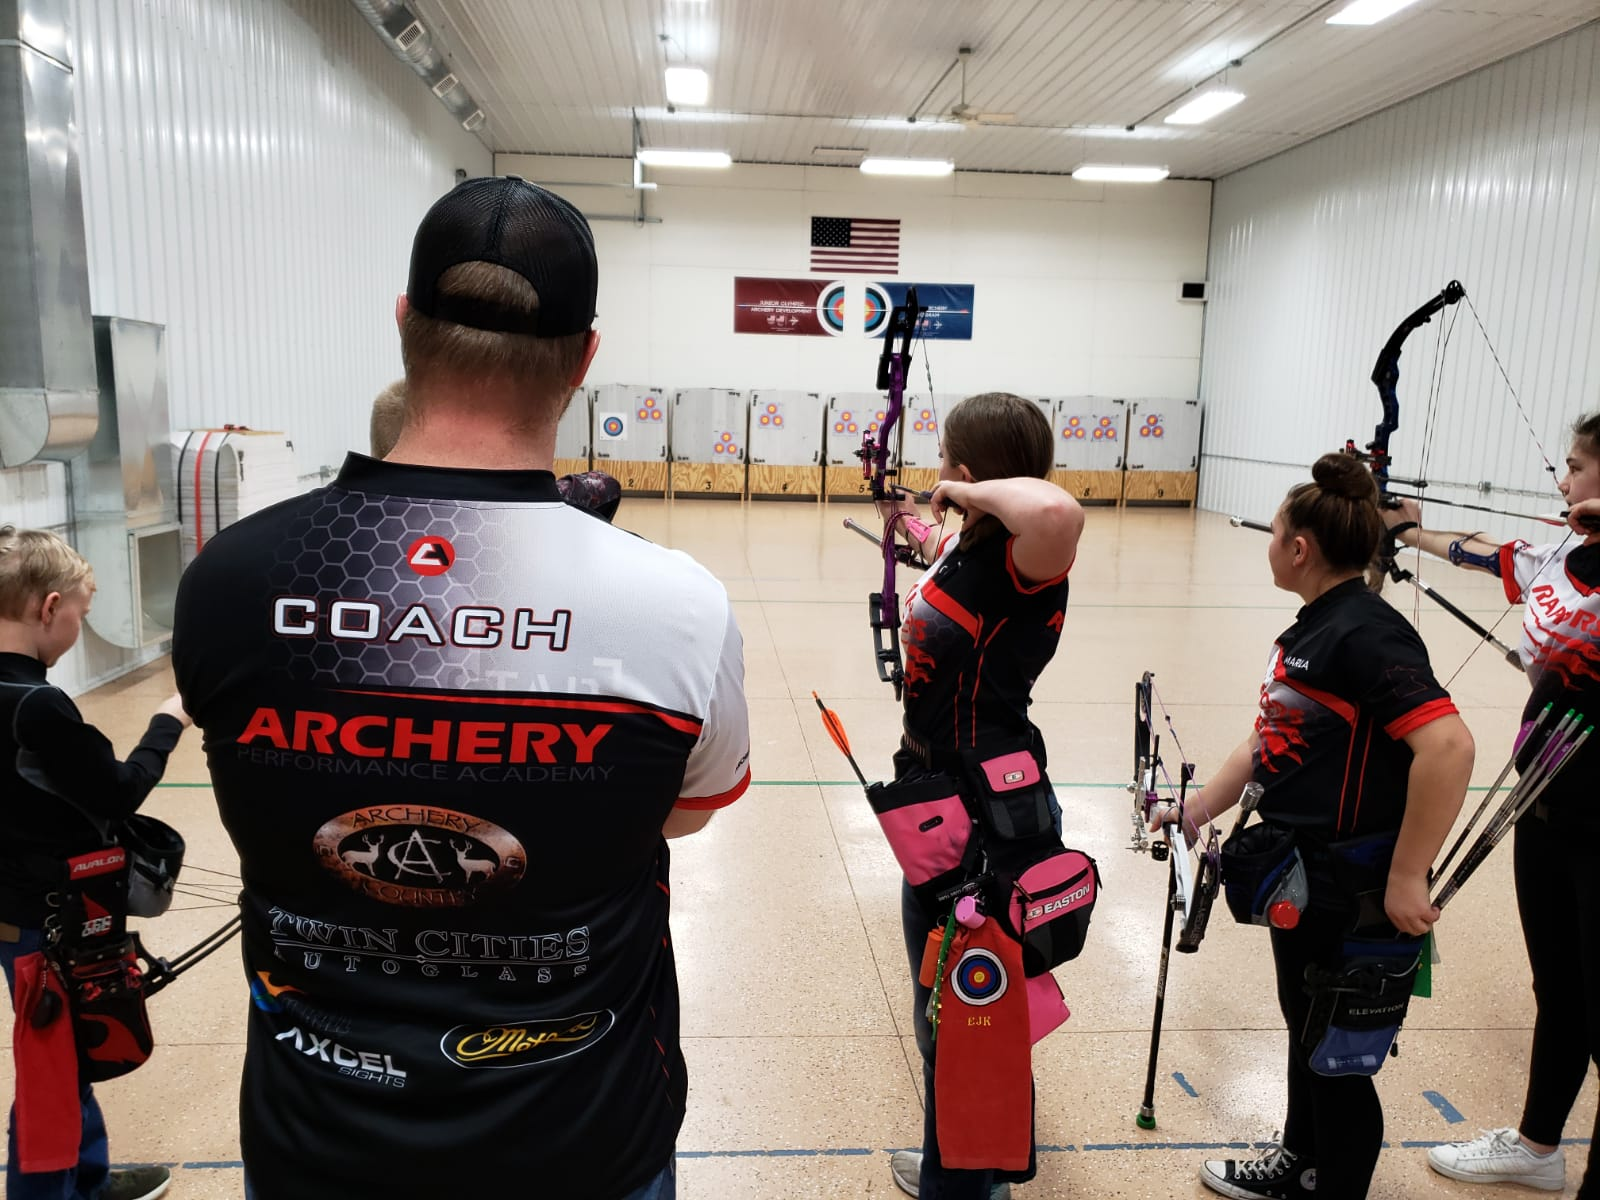 ArcheryPerformanceAcademyJOAD1